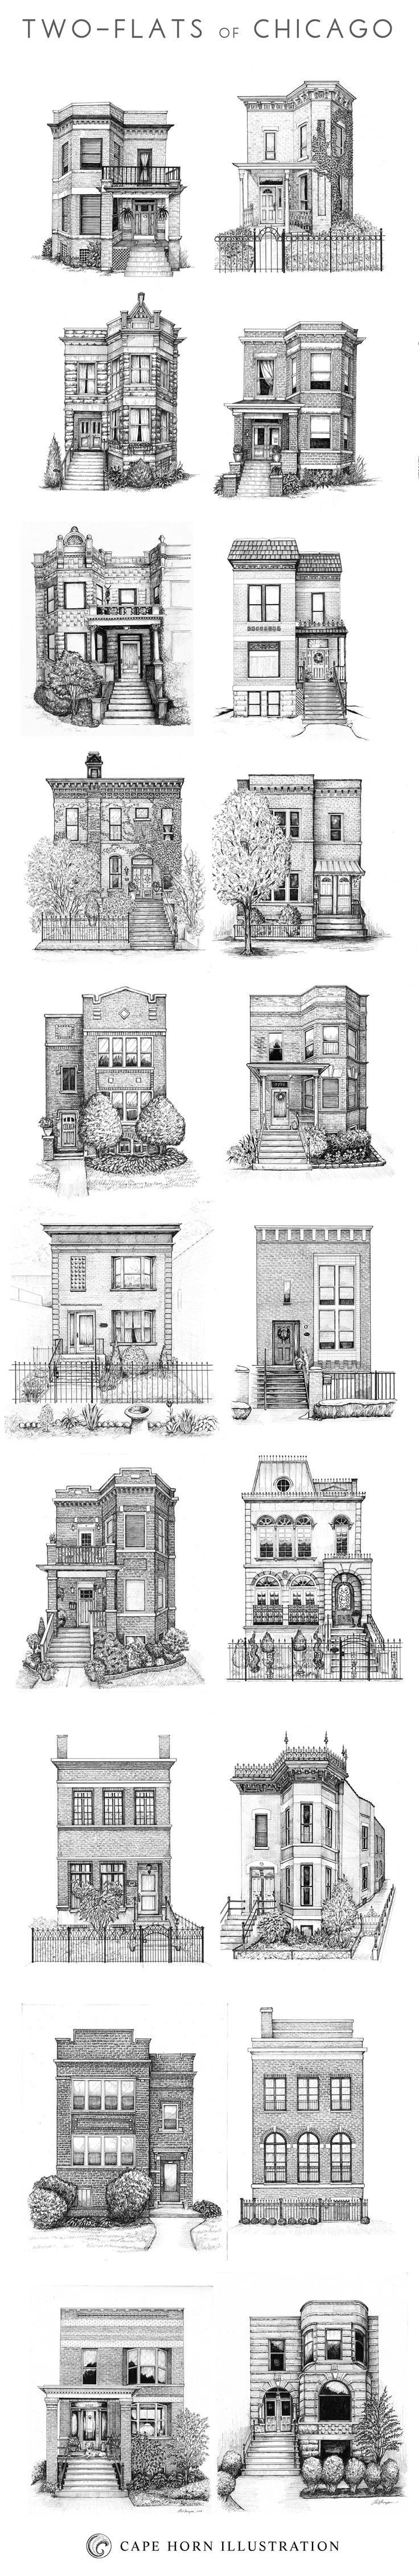 Two-flats of Chicago: Variations on a Theme